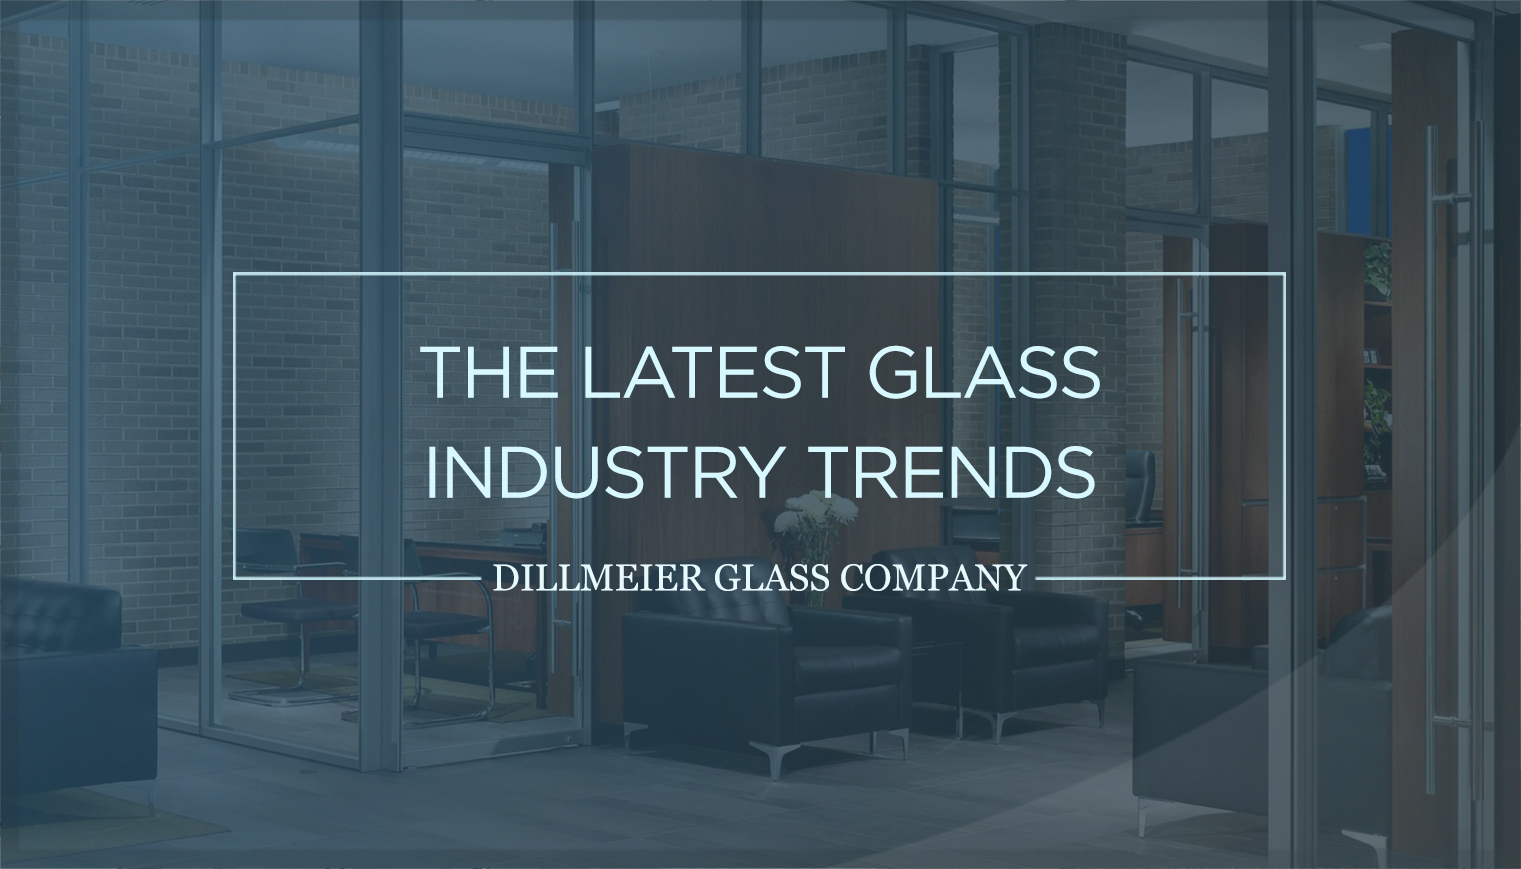 The-Latest-Glass-Industry-Trends